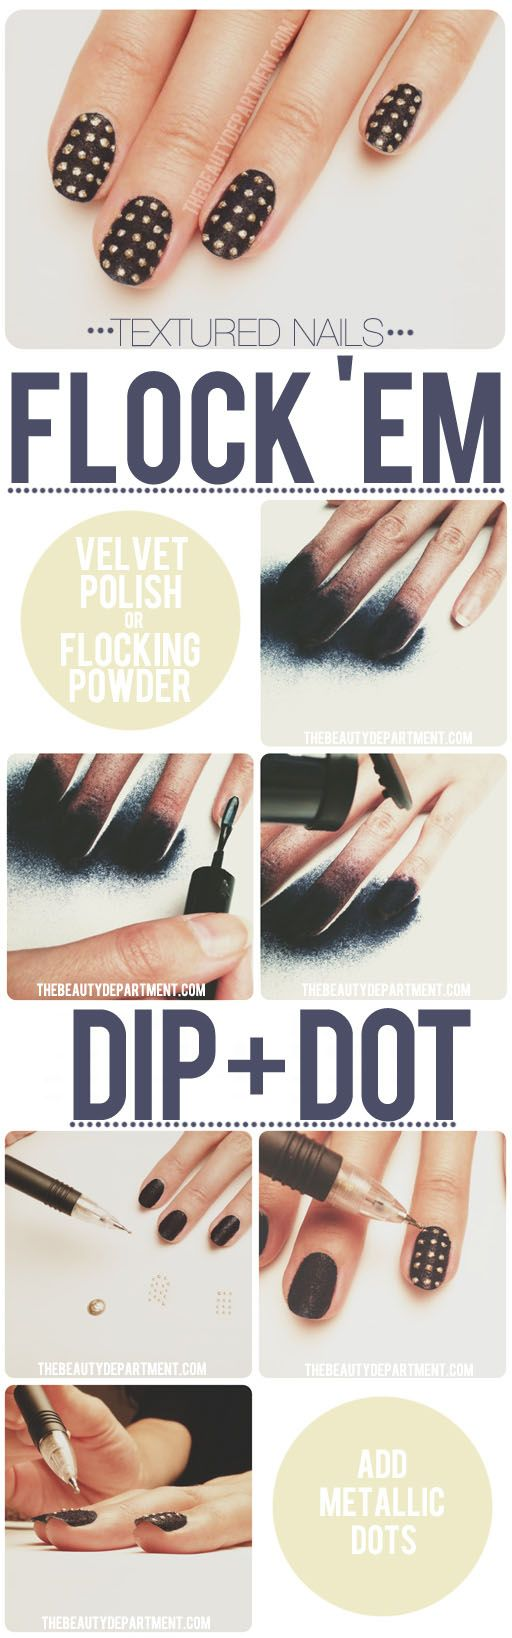 Pinned by www.SimpleNailArtTips.com SIMPLE NAIL ART DESIGN IDEAS - Tutorial  TBD flocked nails metallic dots #nail art #manicure